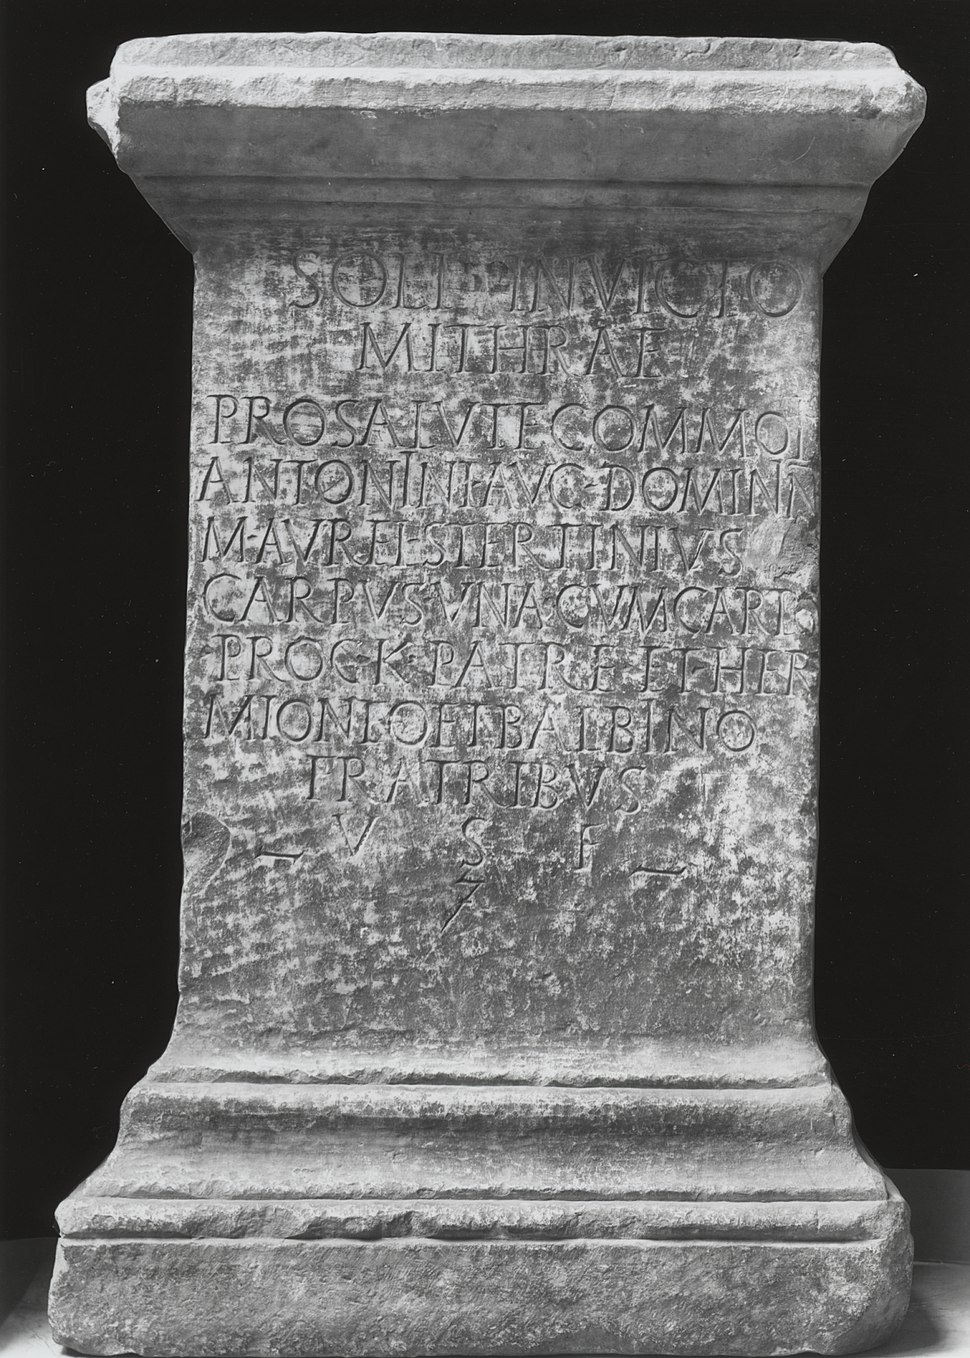 Roman - Funeral Stele with Latin Inscription Referring To Mithra - Walters 2317